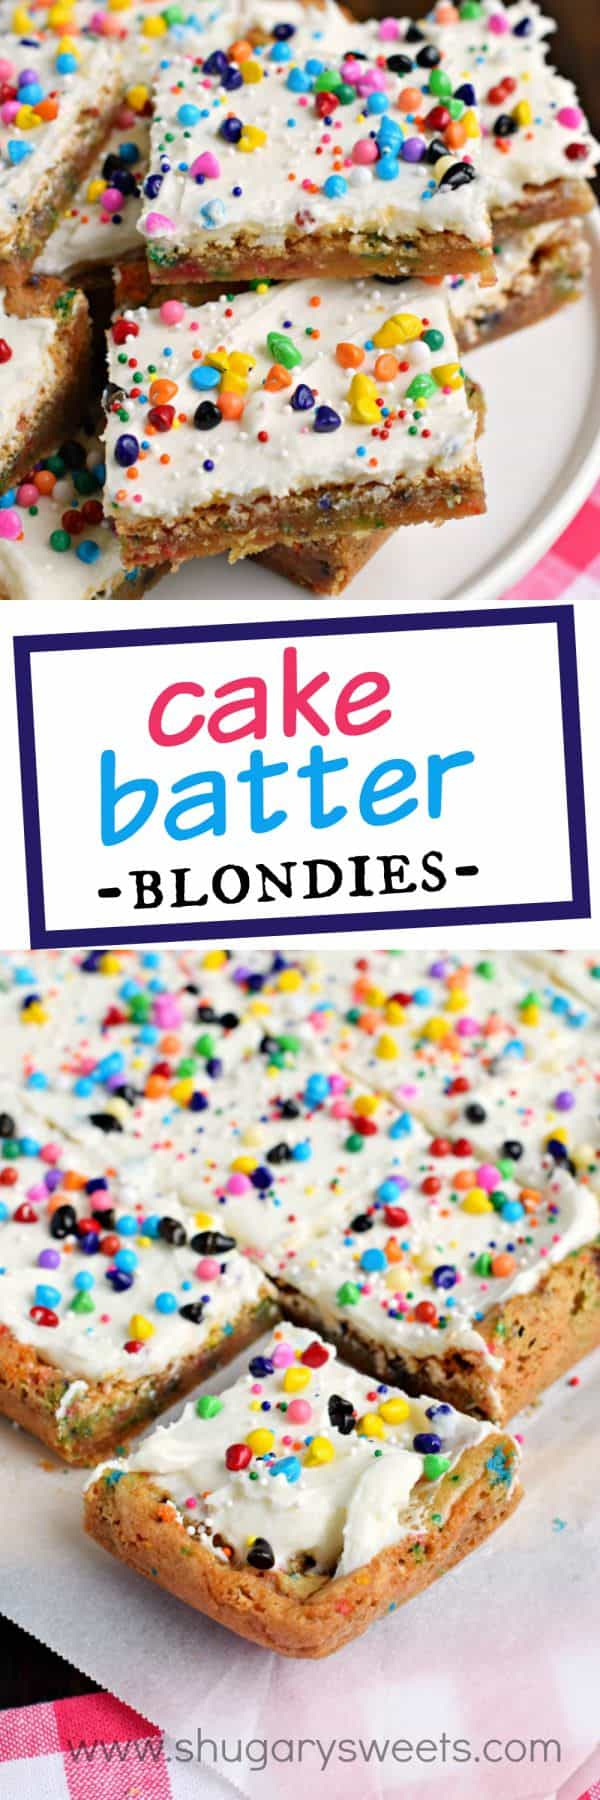 Chewy and butter-rich Cake Batter Blondies are so easy to make! Don't forget to top them with the sweet cake batter frosting too for an over the top dessert!